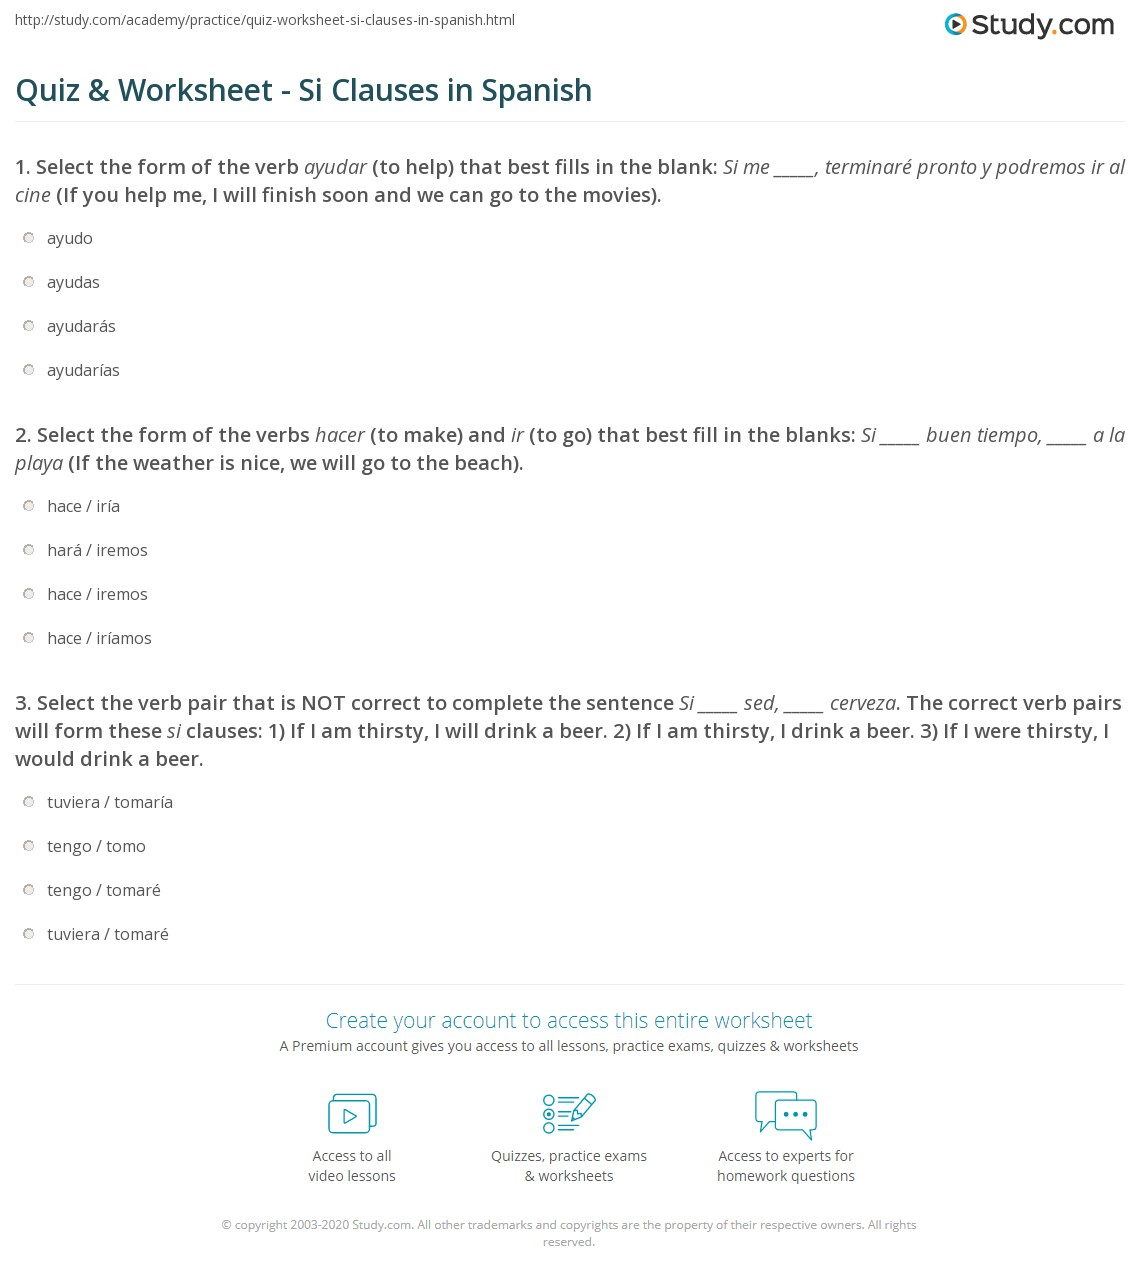 Quiz Worksheet Si Clauses In Spanish Study